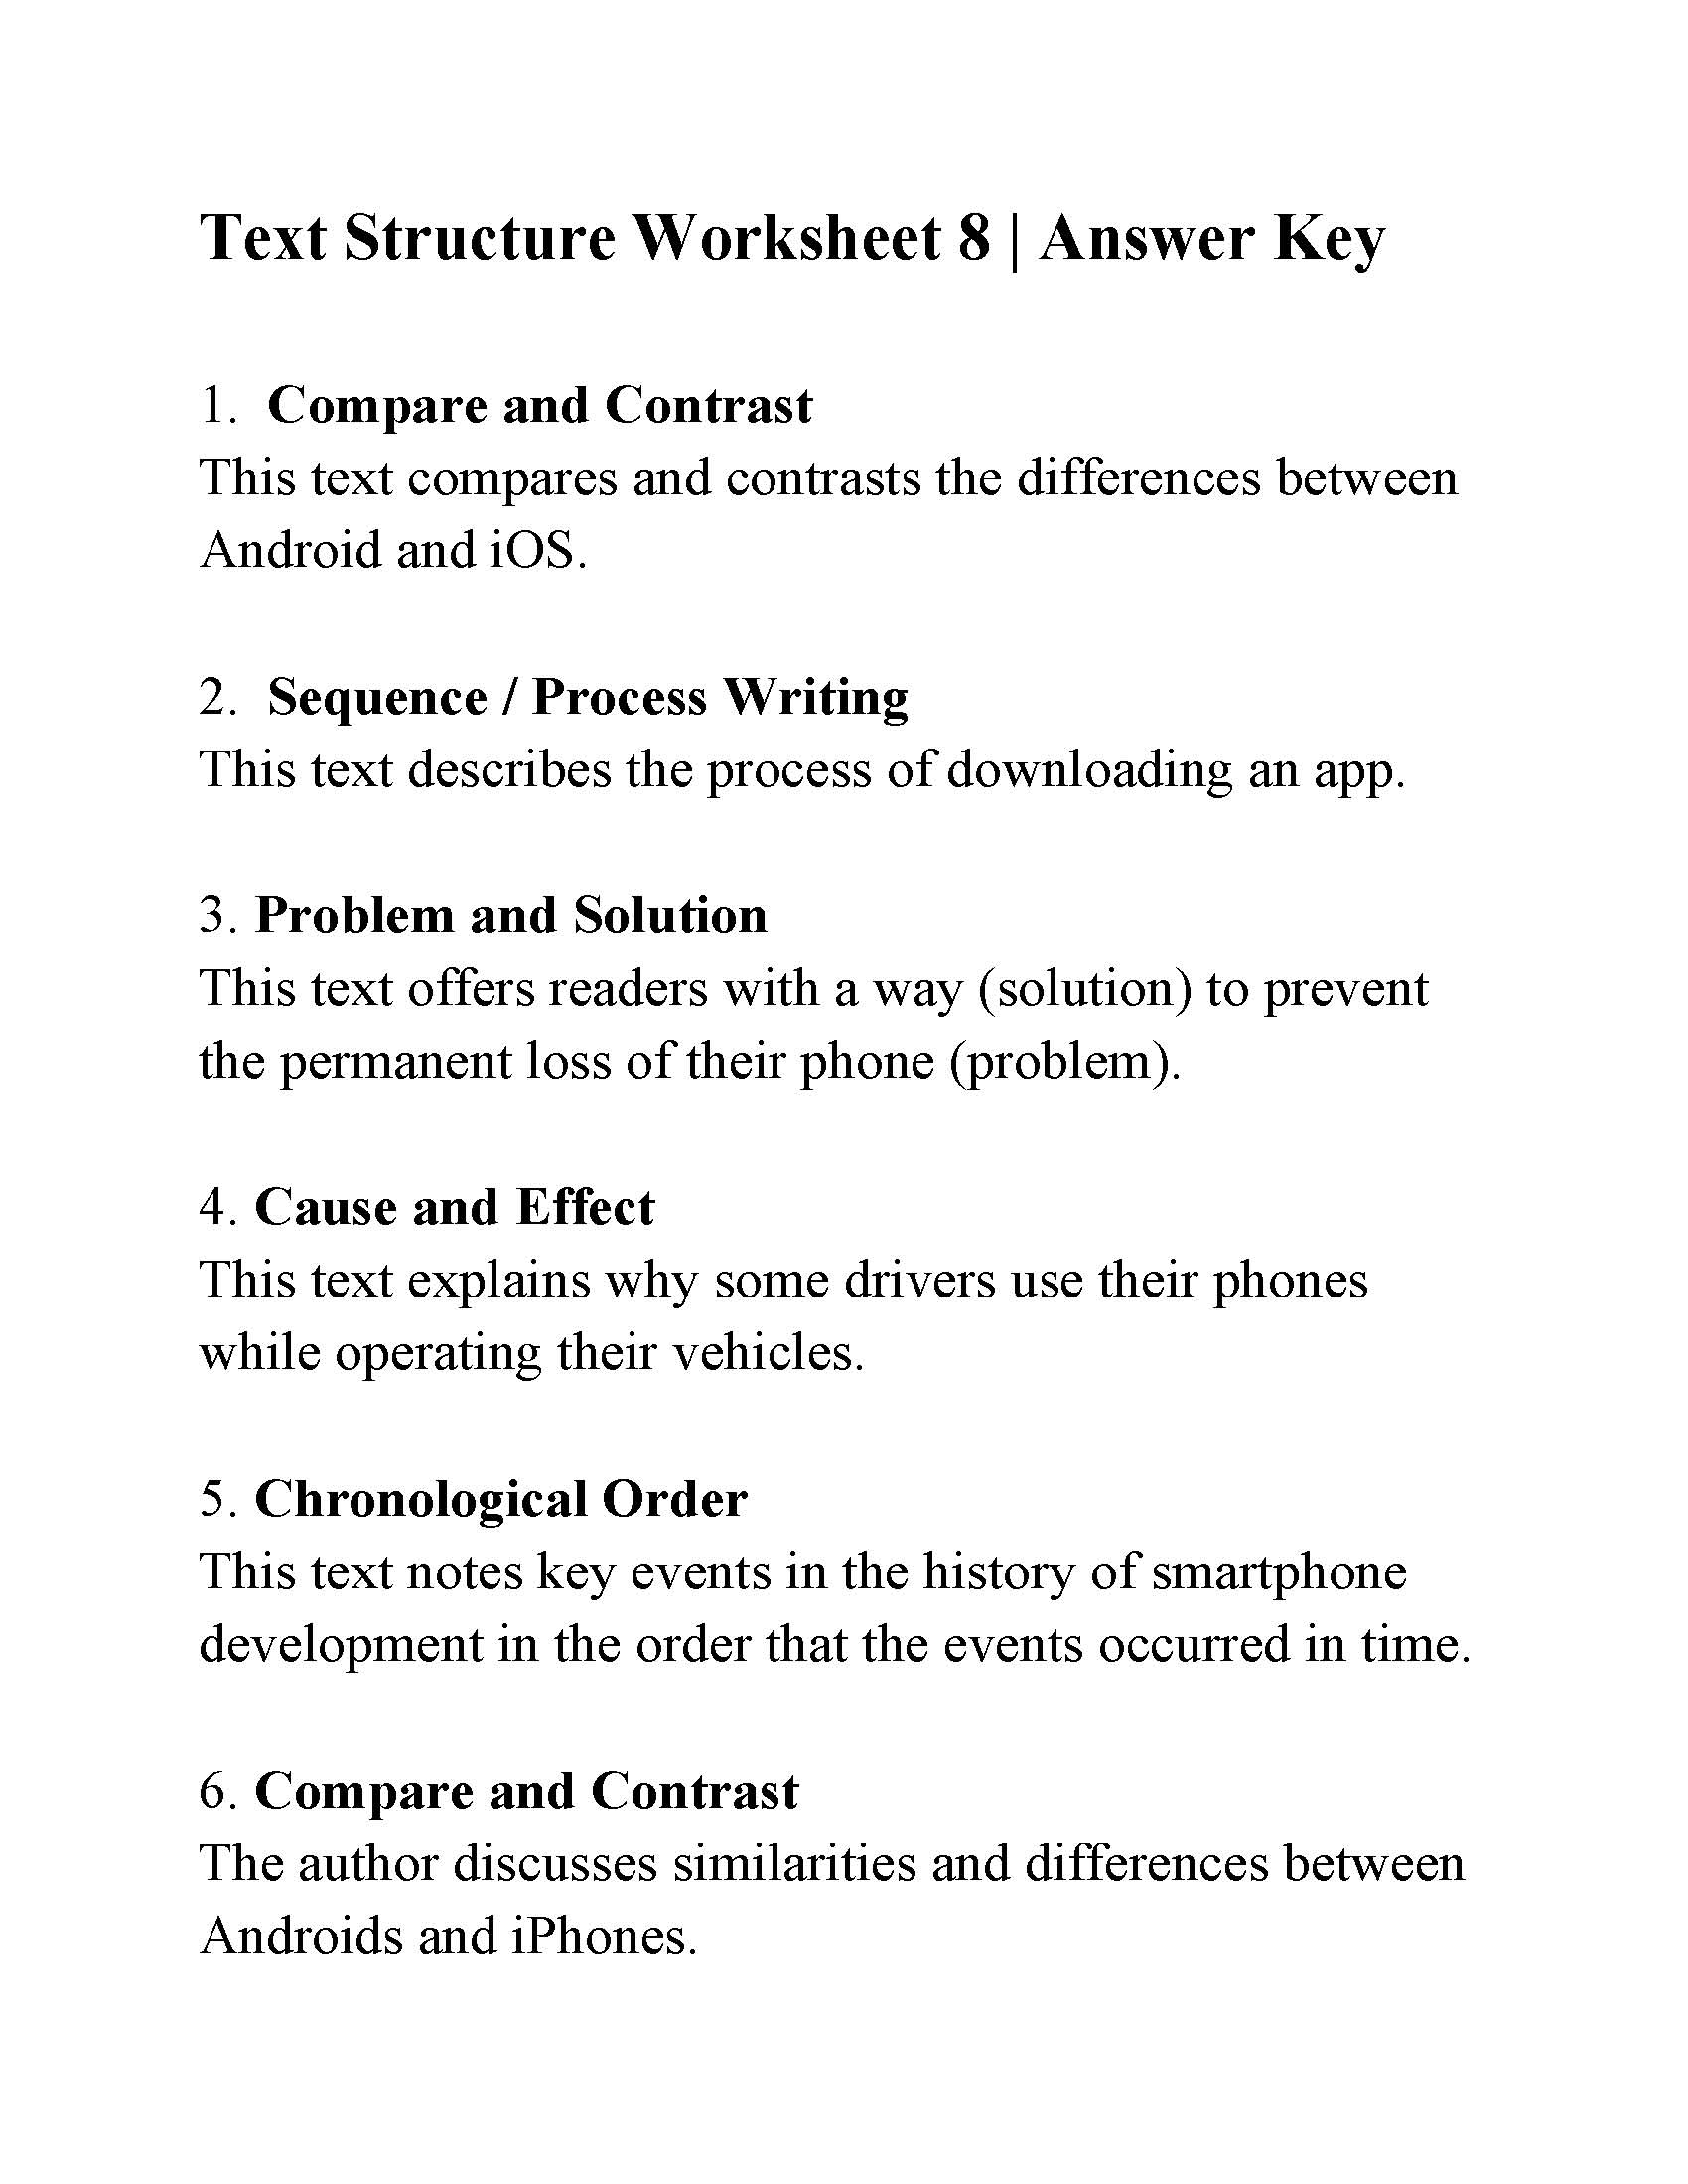 Text Structure Worksheet 8